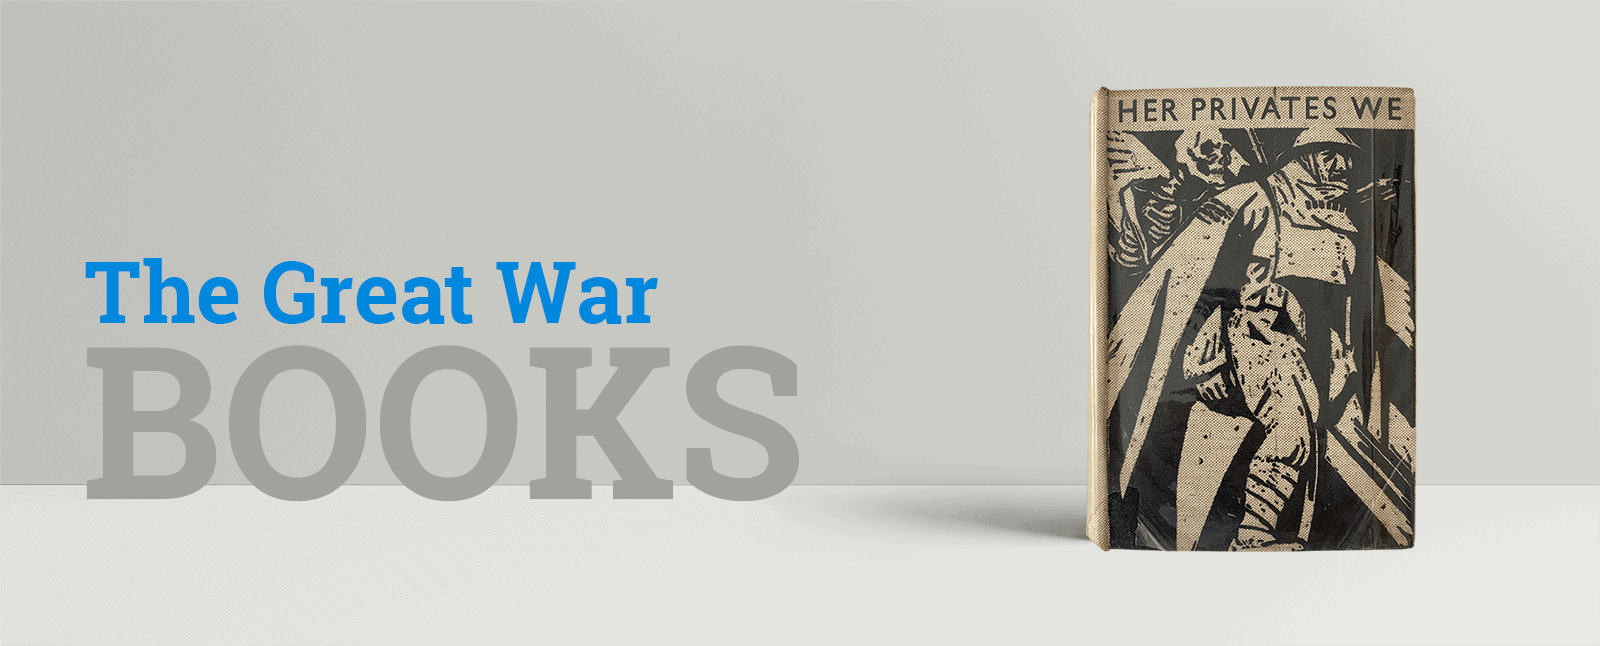 Books Of The Great War